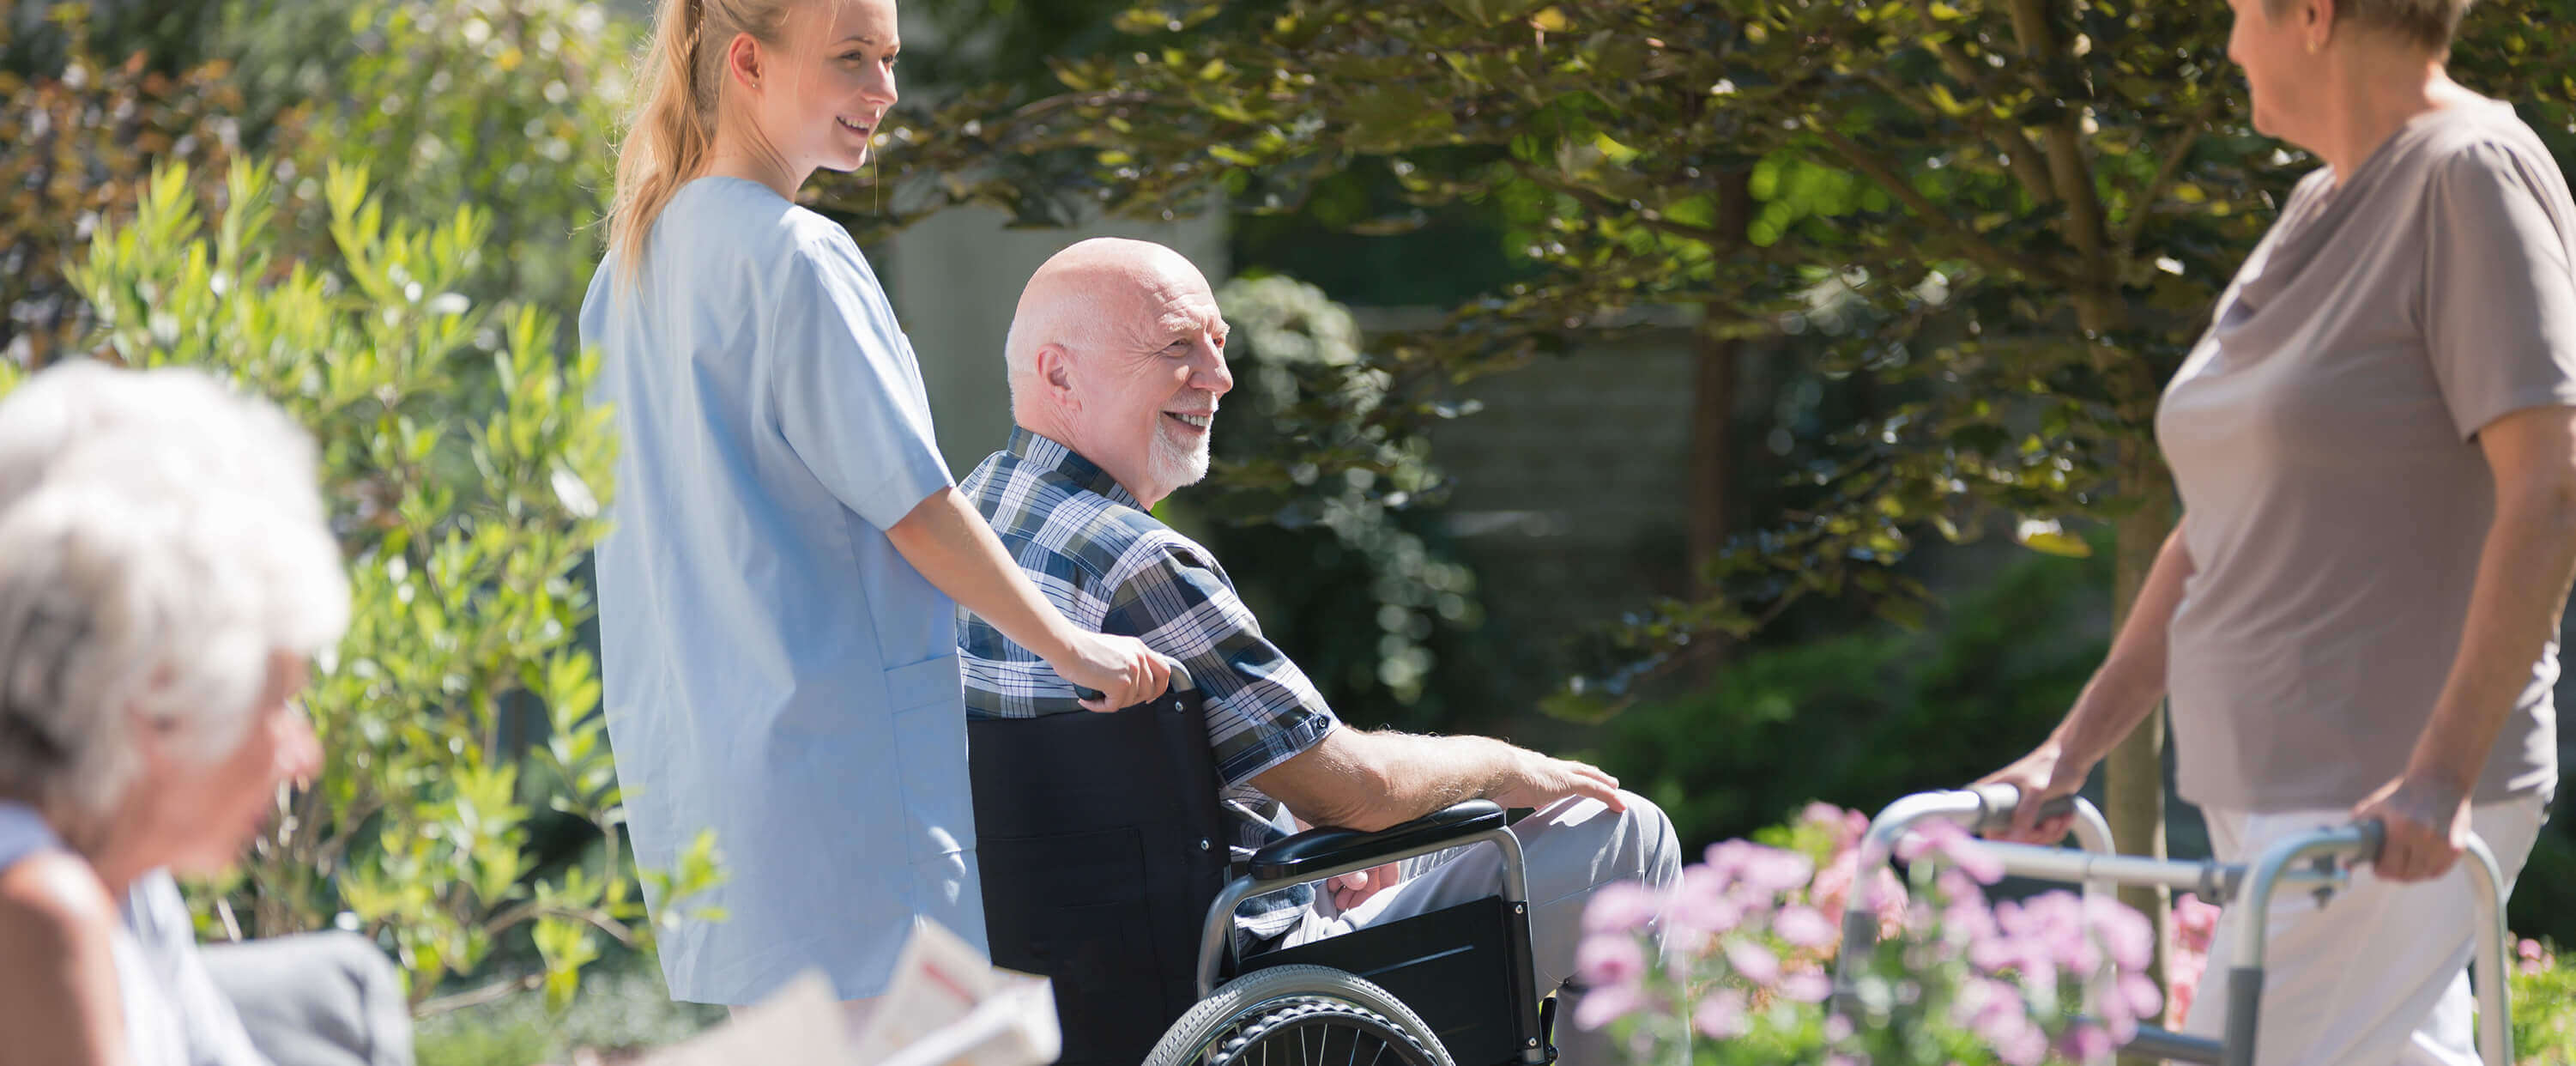 Northleach Court care homes gloucestershire exceptional care specialist dementia care